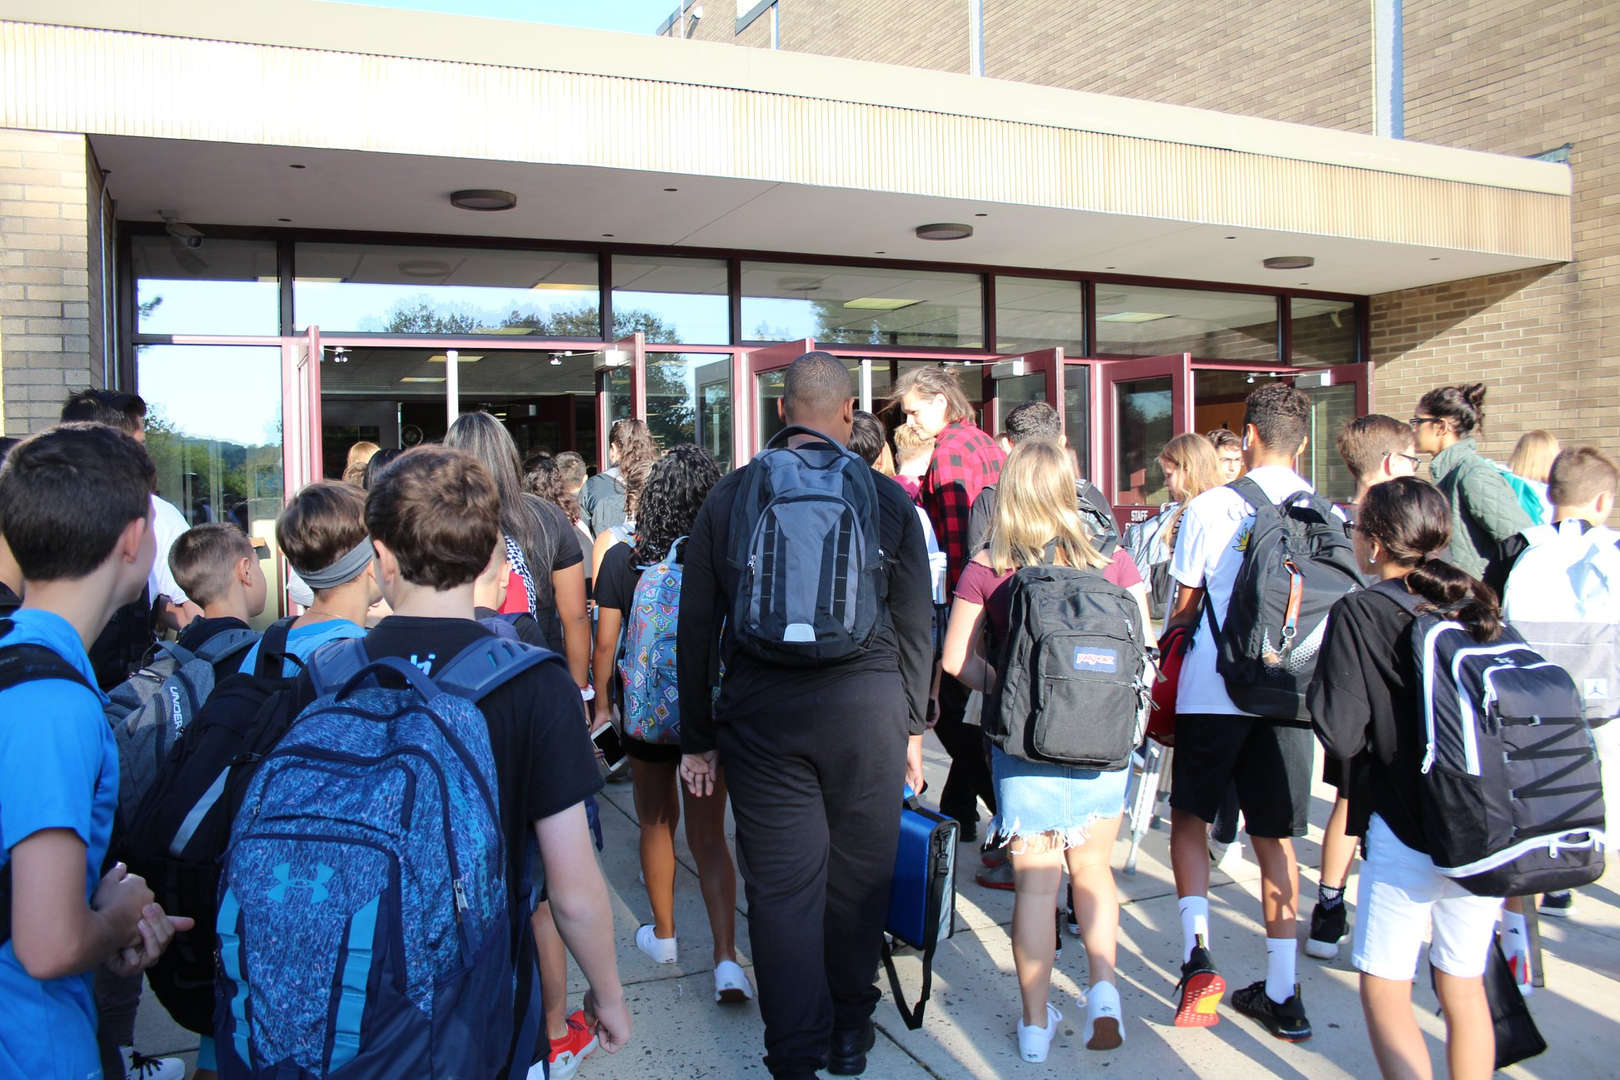 Students entering the school building on the first day of school